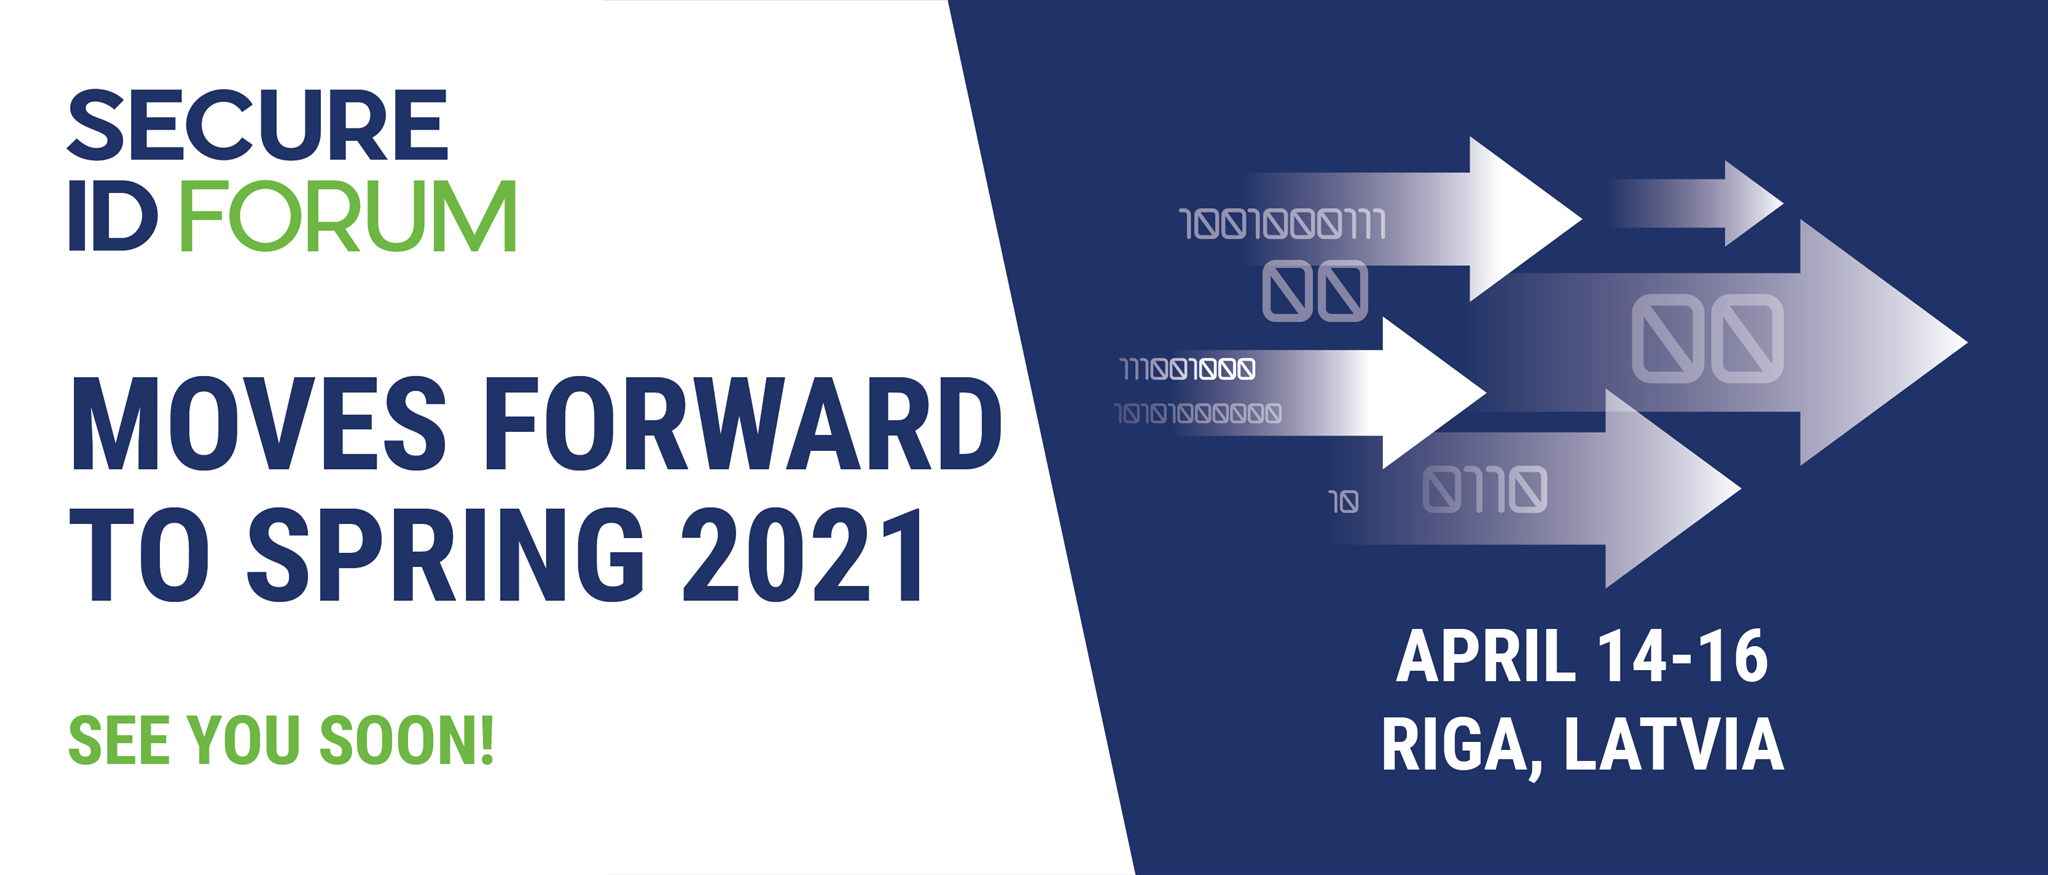 X Infotech - Secure Id 2020 Moves To April 14 - 16, 2021-April 2021 Bill Payment